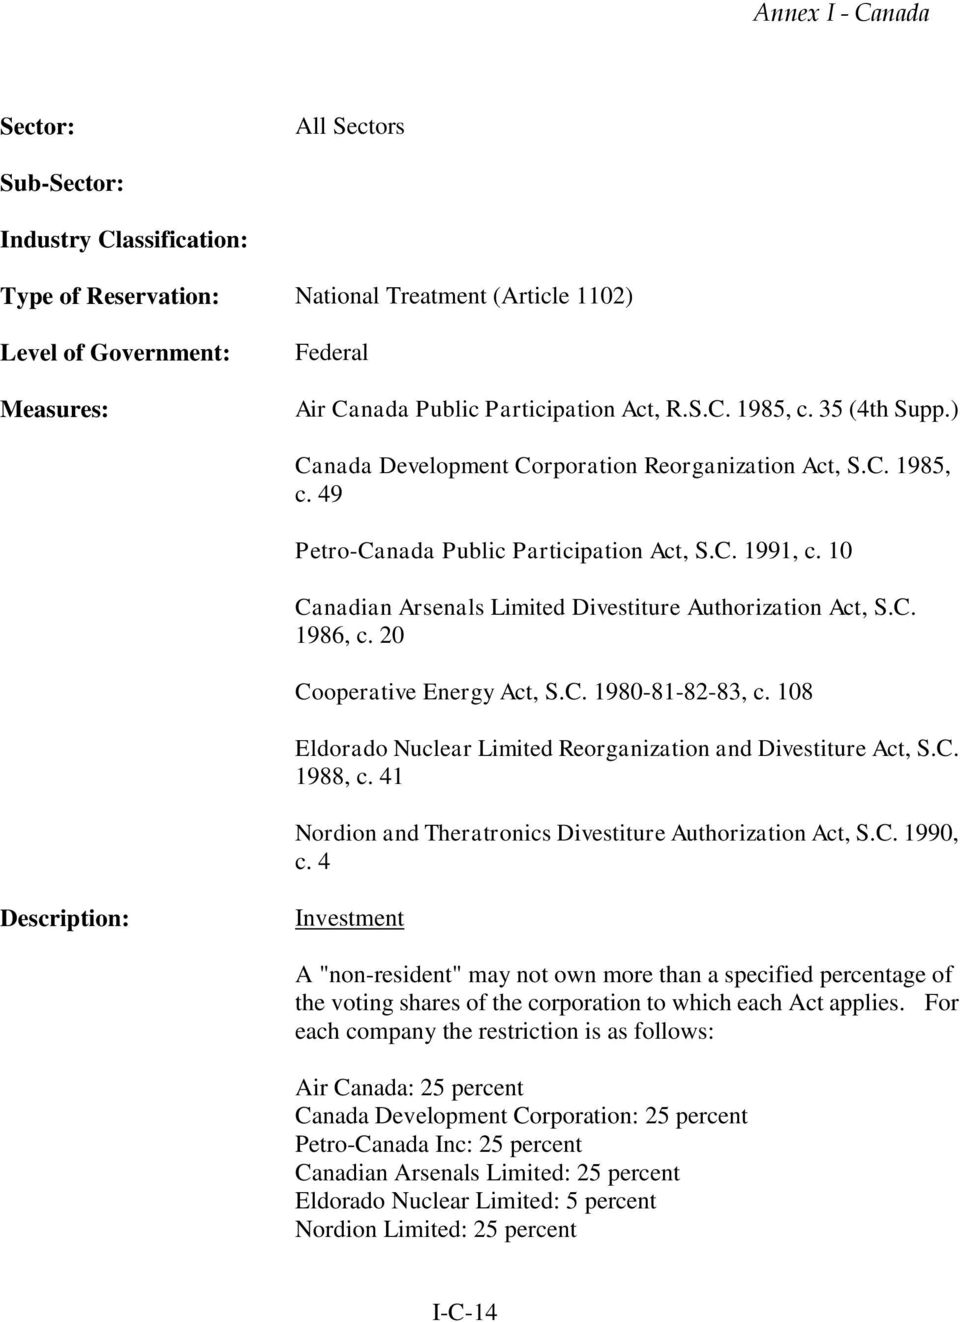 20 Cooperative Energy Act, S.C. 1980-81-82-83, c. 108 Eldorado Nuclear Limited Reorganization and Divestiture Act, S.C. 1988, c. 41 Nordion and Theratronics Divestiture Authorization Act, S.C. 1990, c.